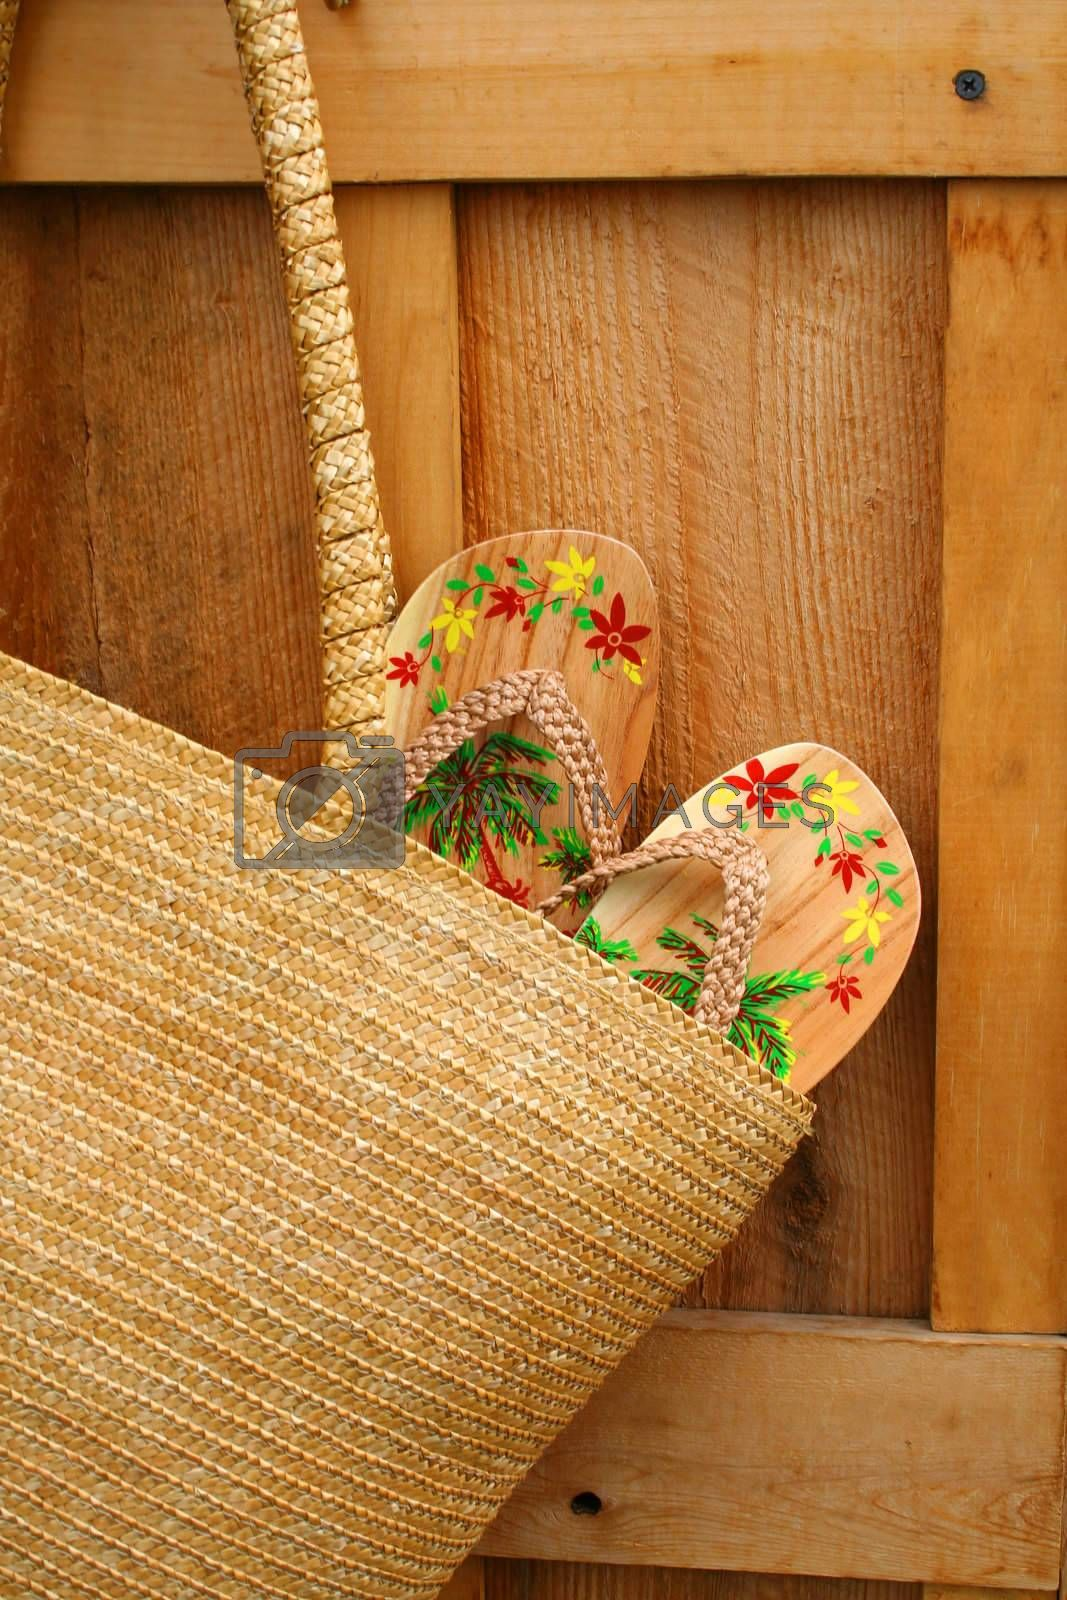 Pair of sandals hanging out of wicker purse/ closeup